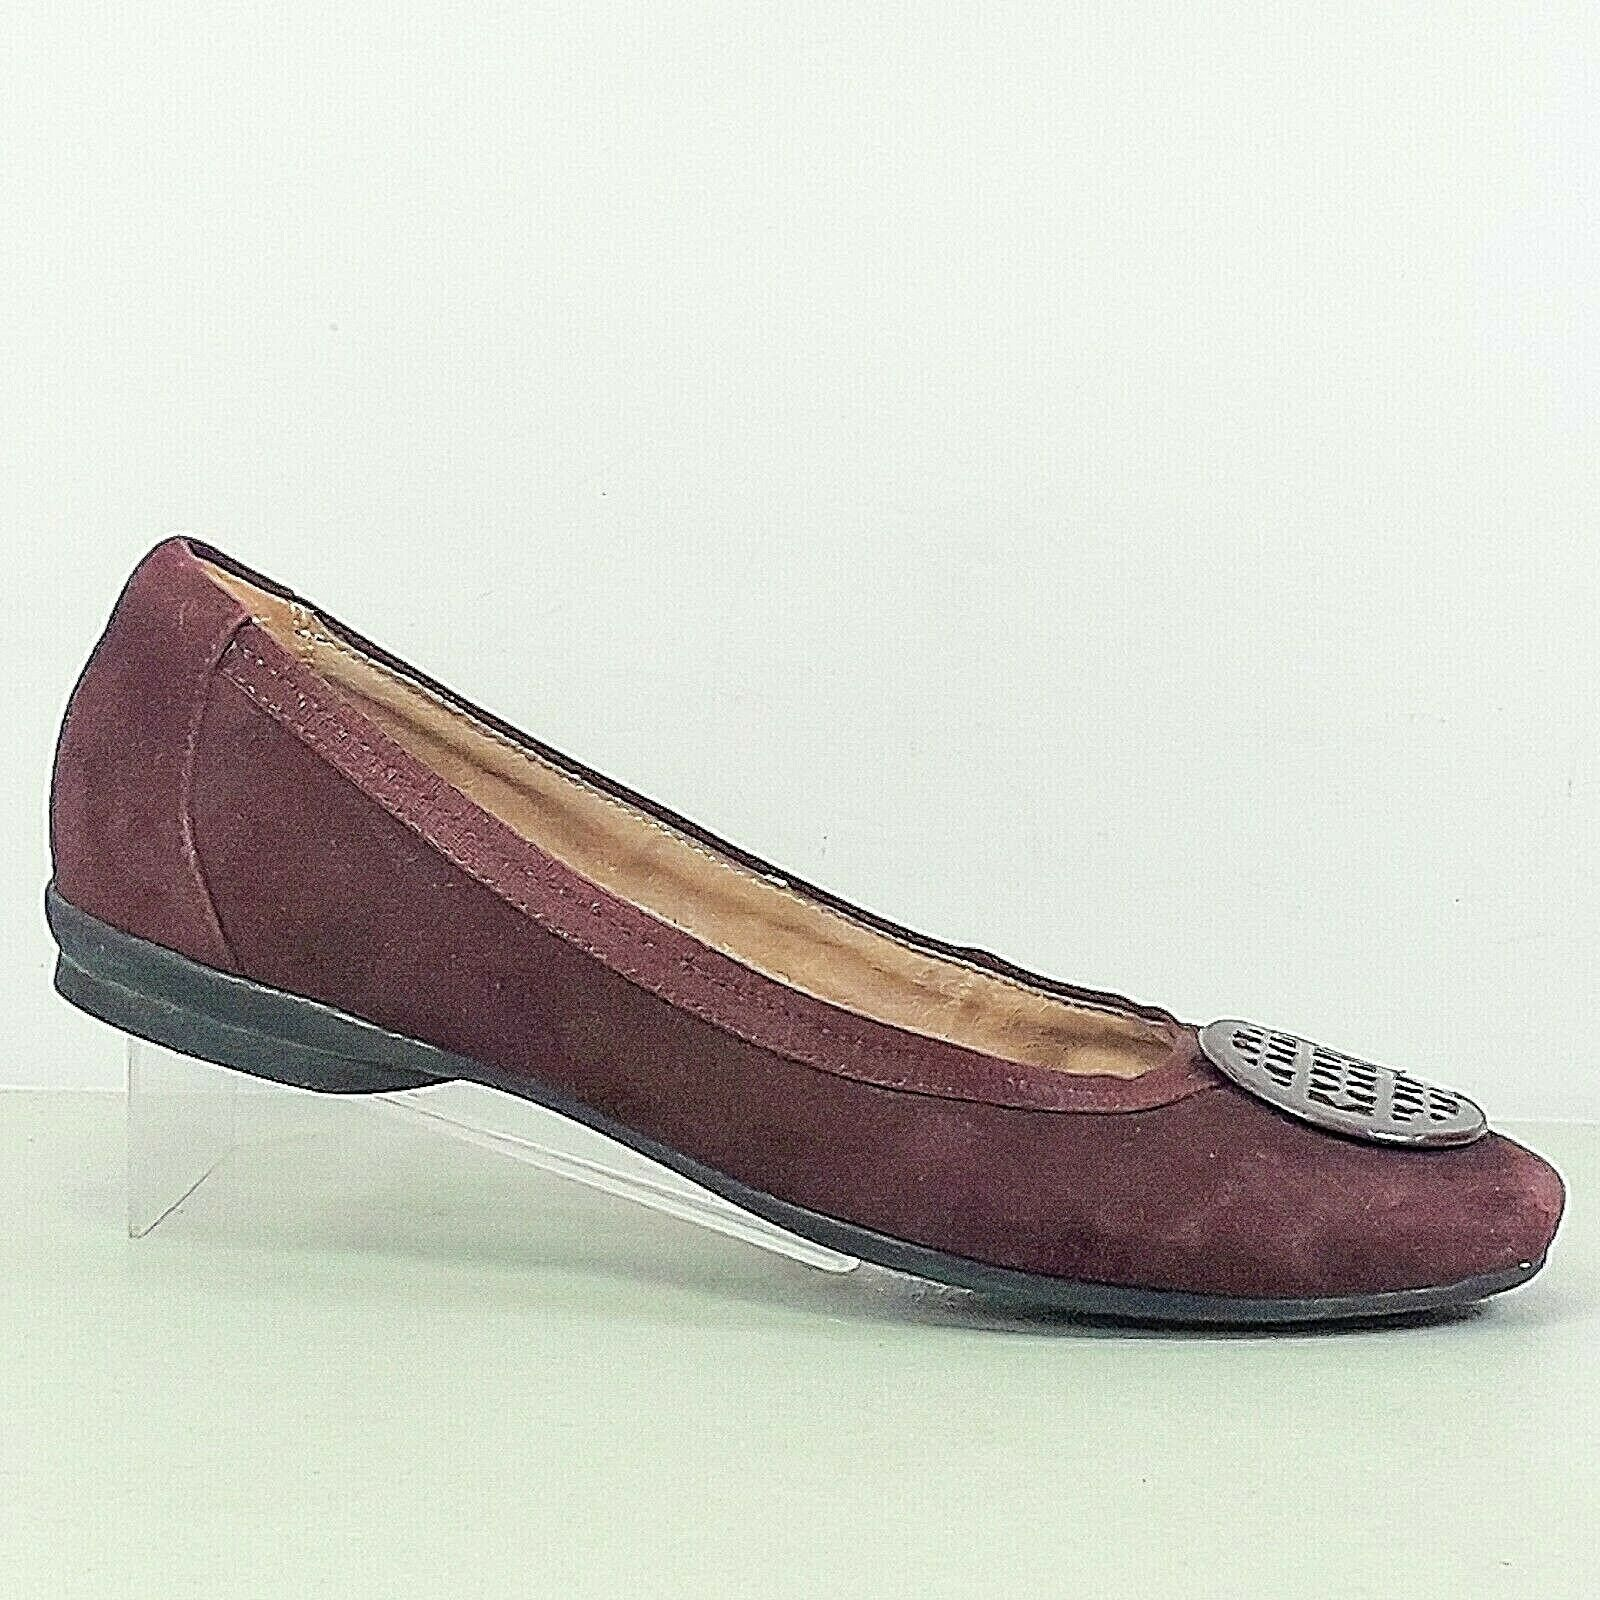 Primary image for Clarks Artisan Candra Womens Burgundy Suede Leather Flat Shoes Size 8.5M